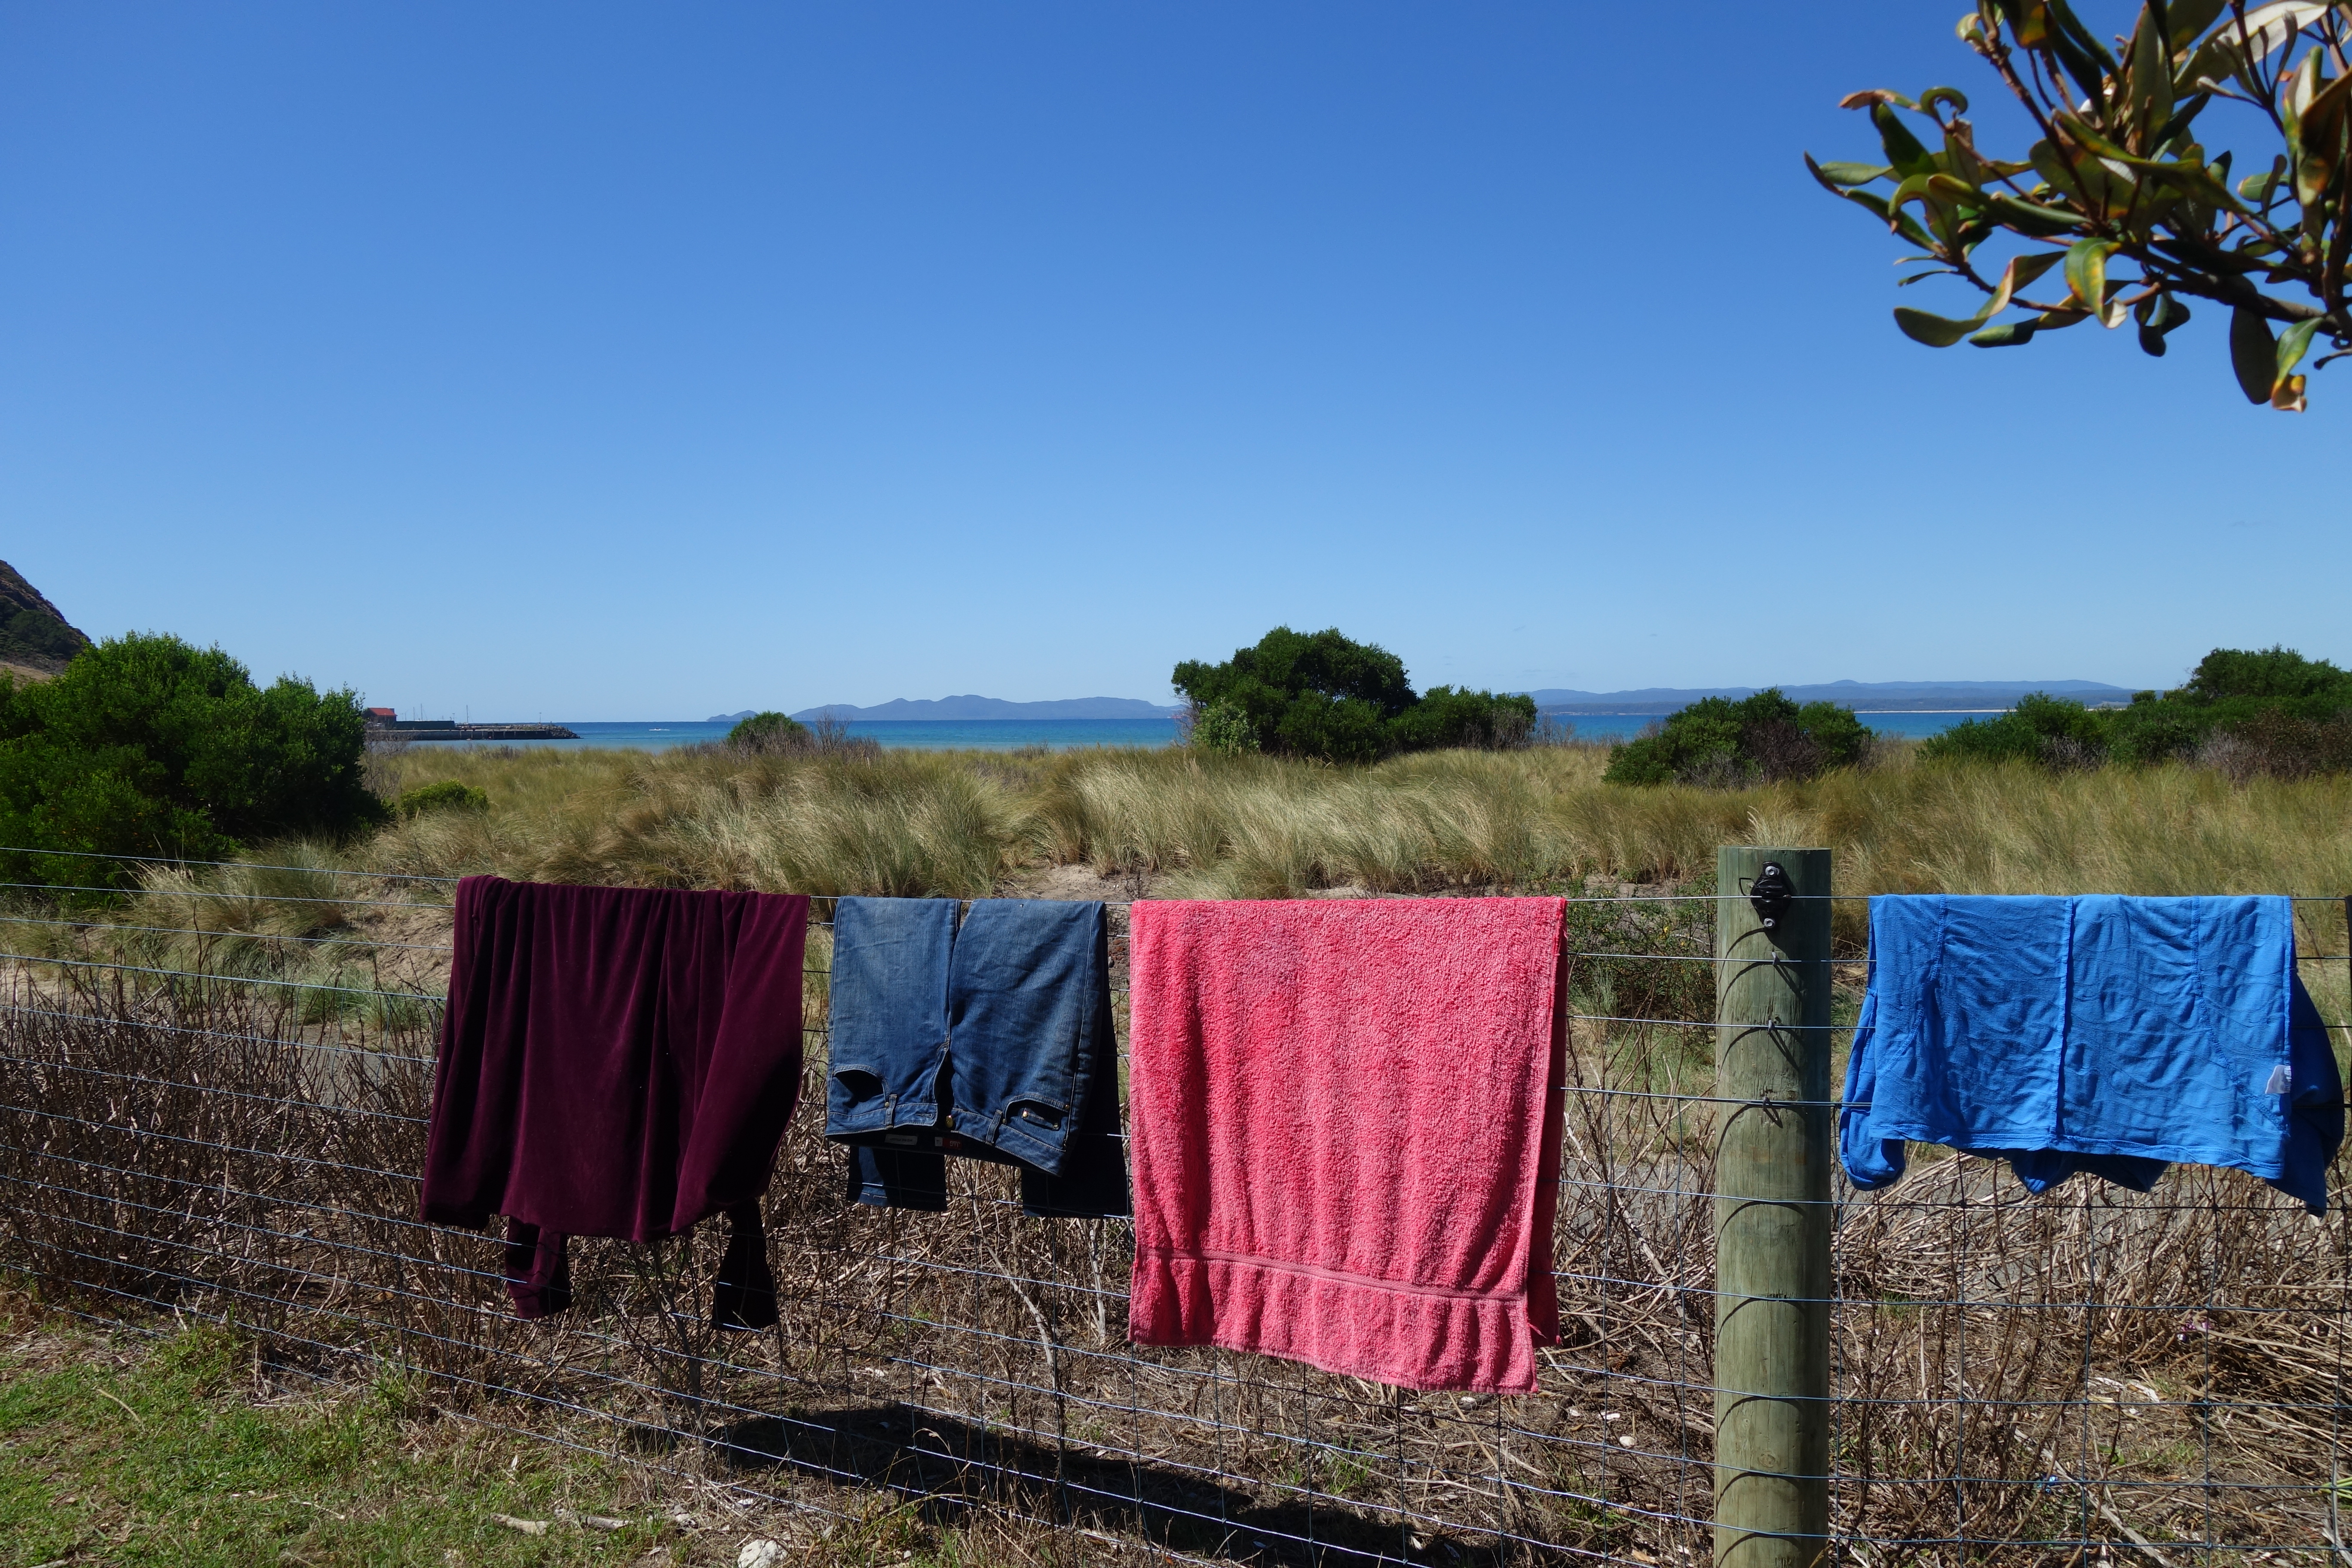 Washing hanging on a wire fence with sea and mountains in the background